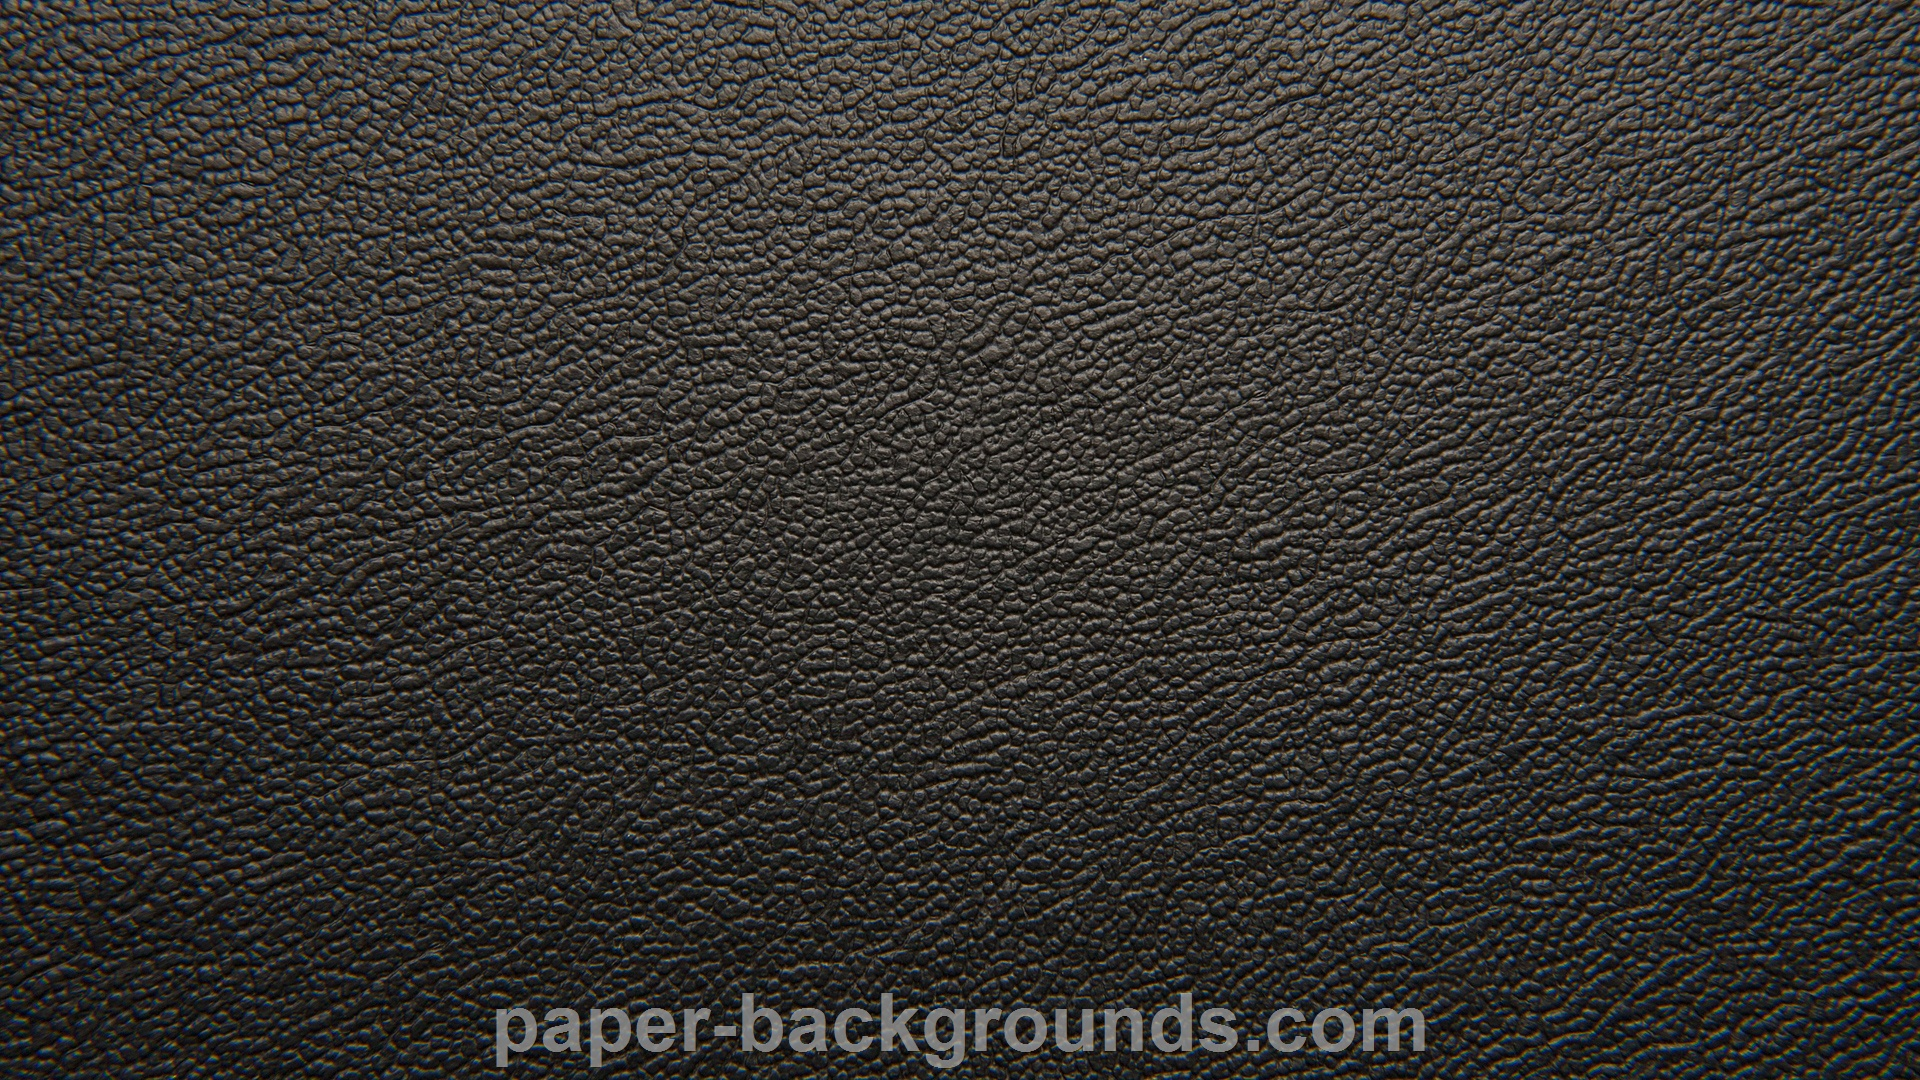 Black Leather Texture Background HD 1920 x 1080p Baby Knit and Love 1920x1080